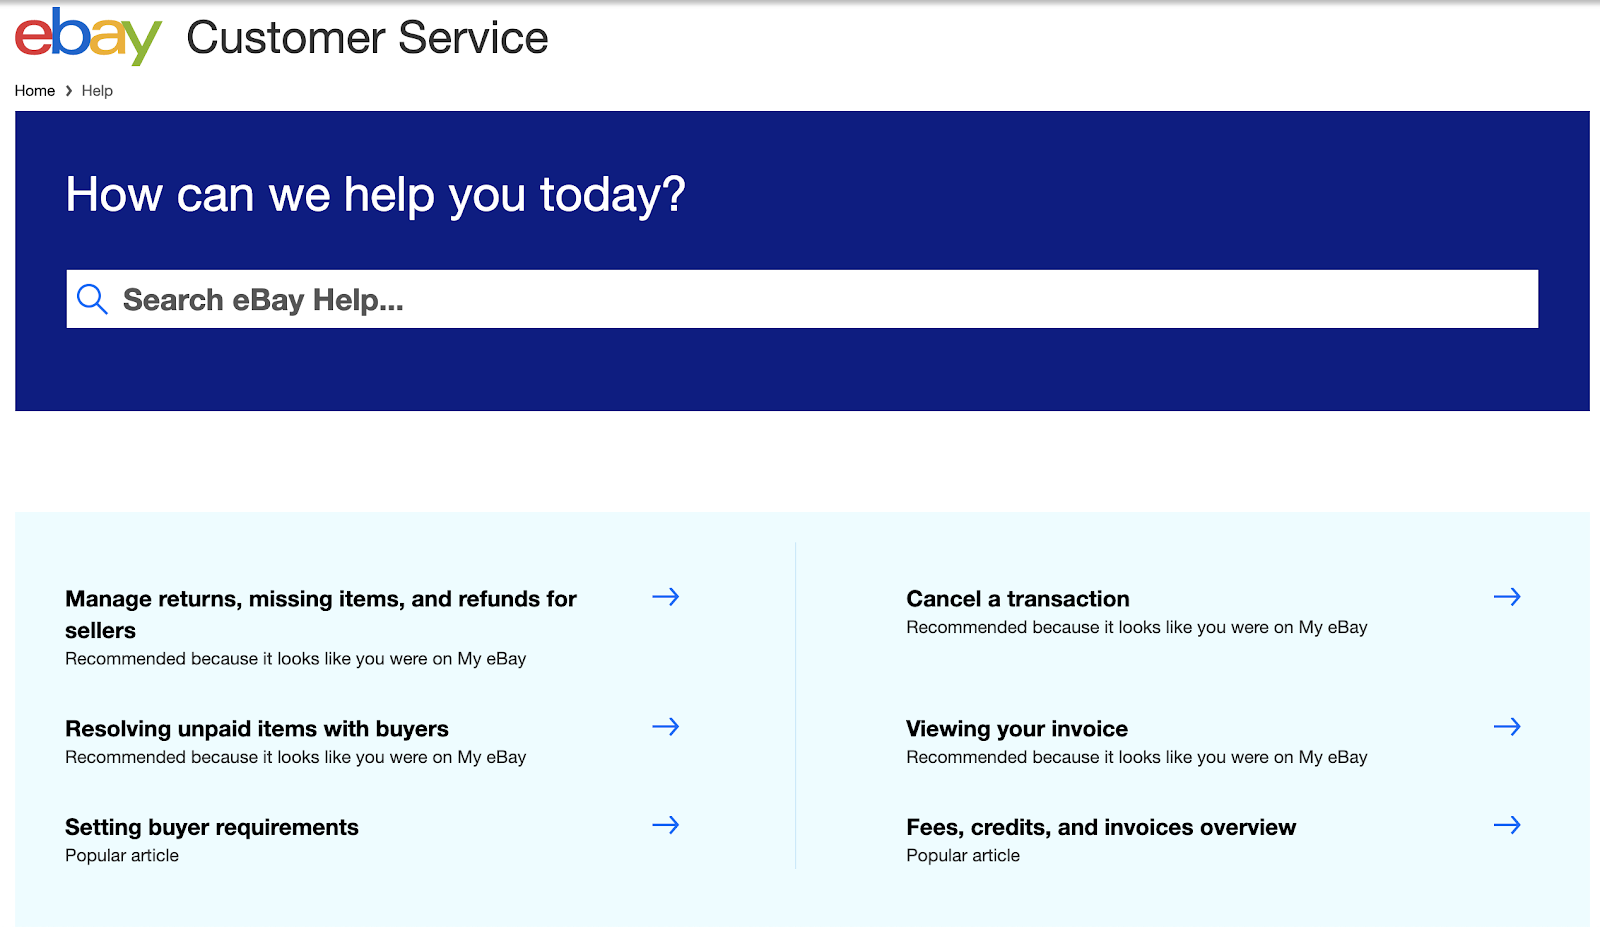 eBay customer service page screenshot